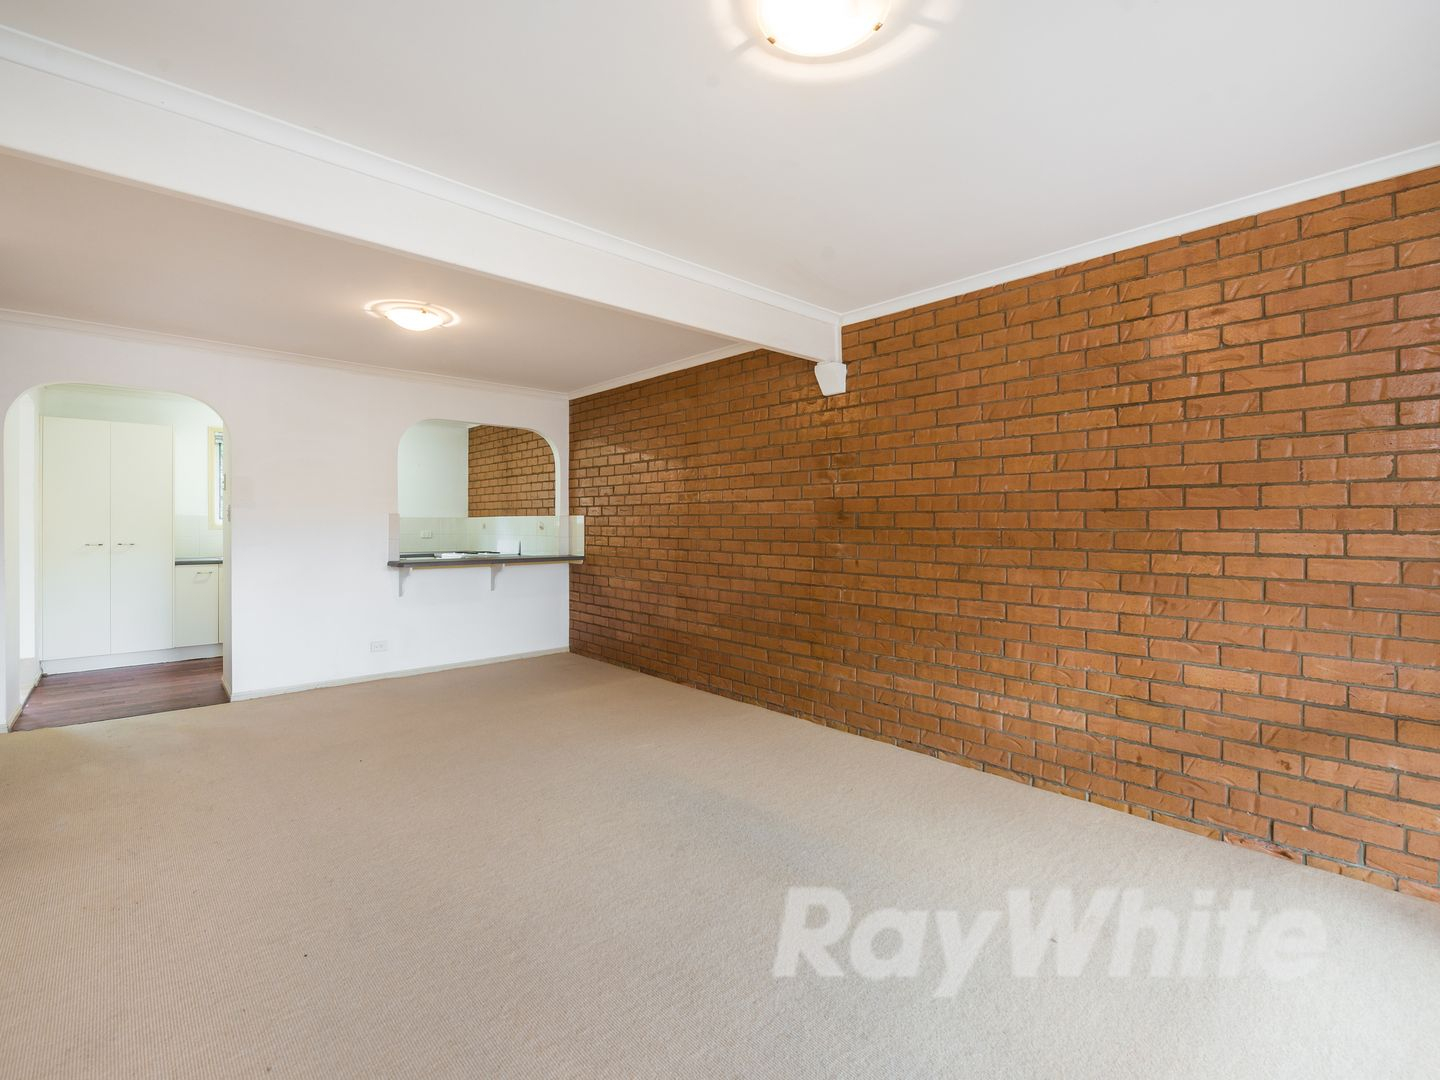 77/15 Vitko Street, Woodridge QLD 4114, Image 1